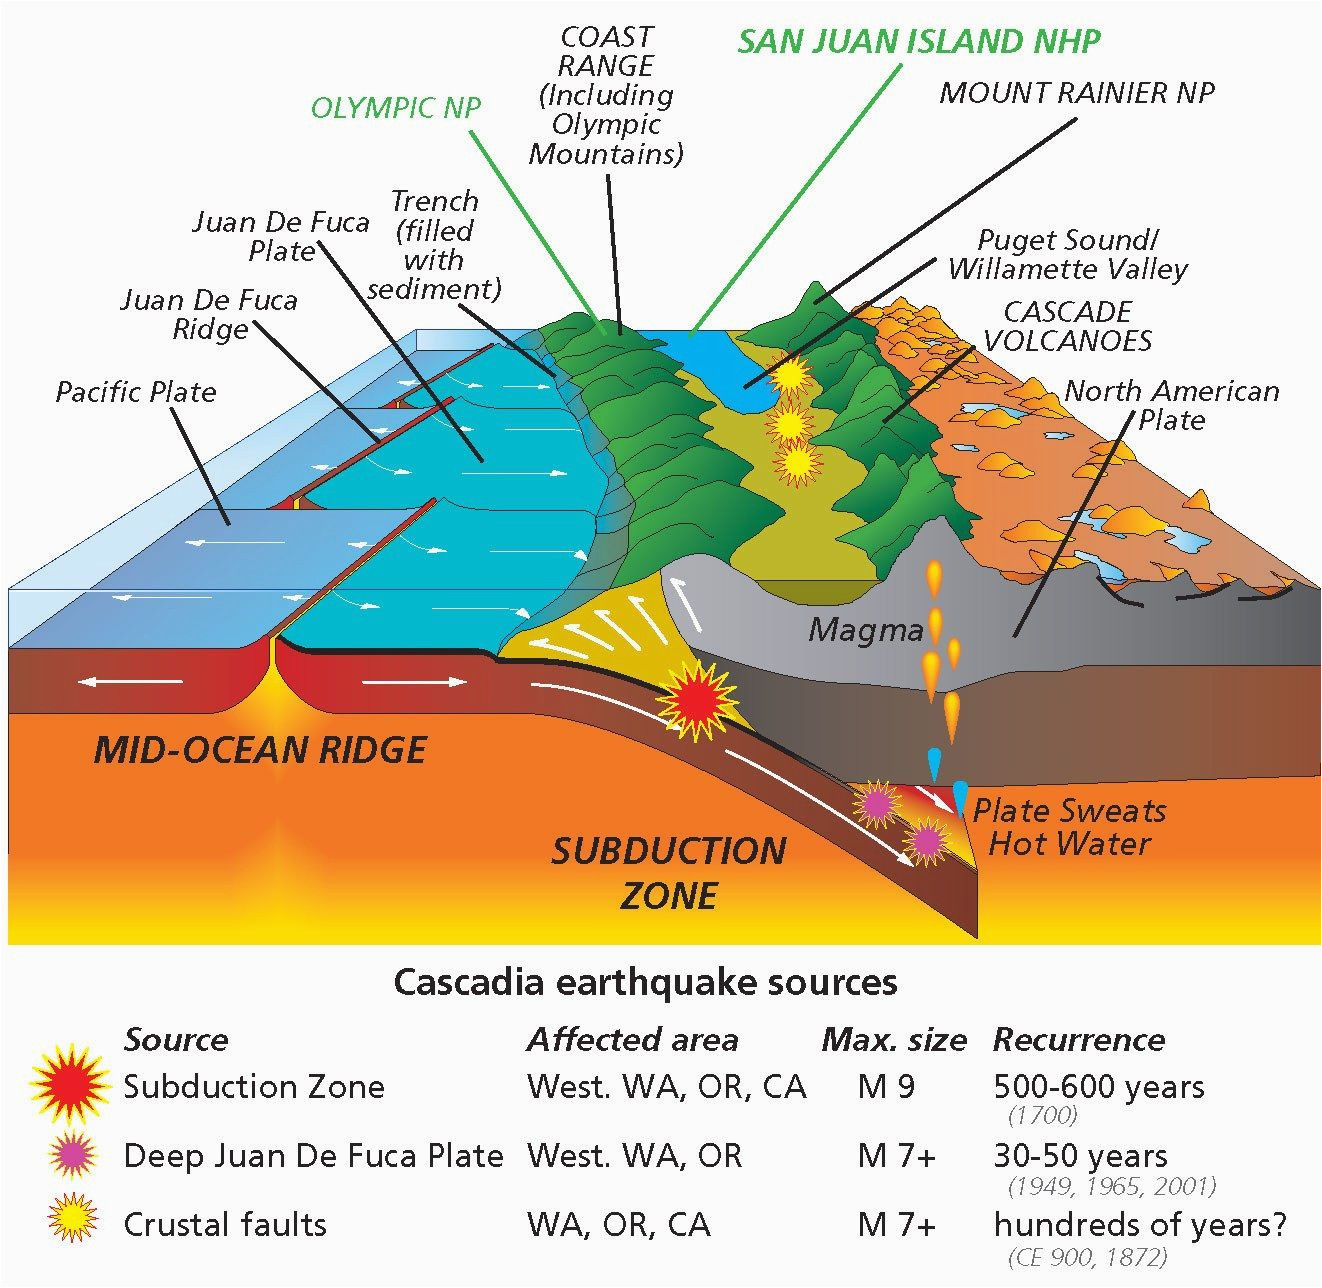 why have volcanoes in the cascades been so quiet lately geology